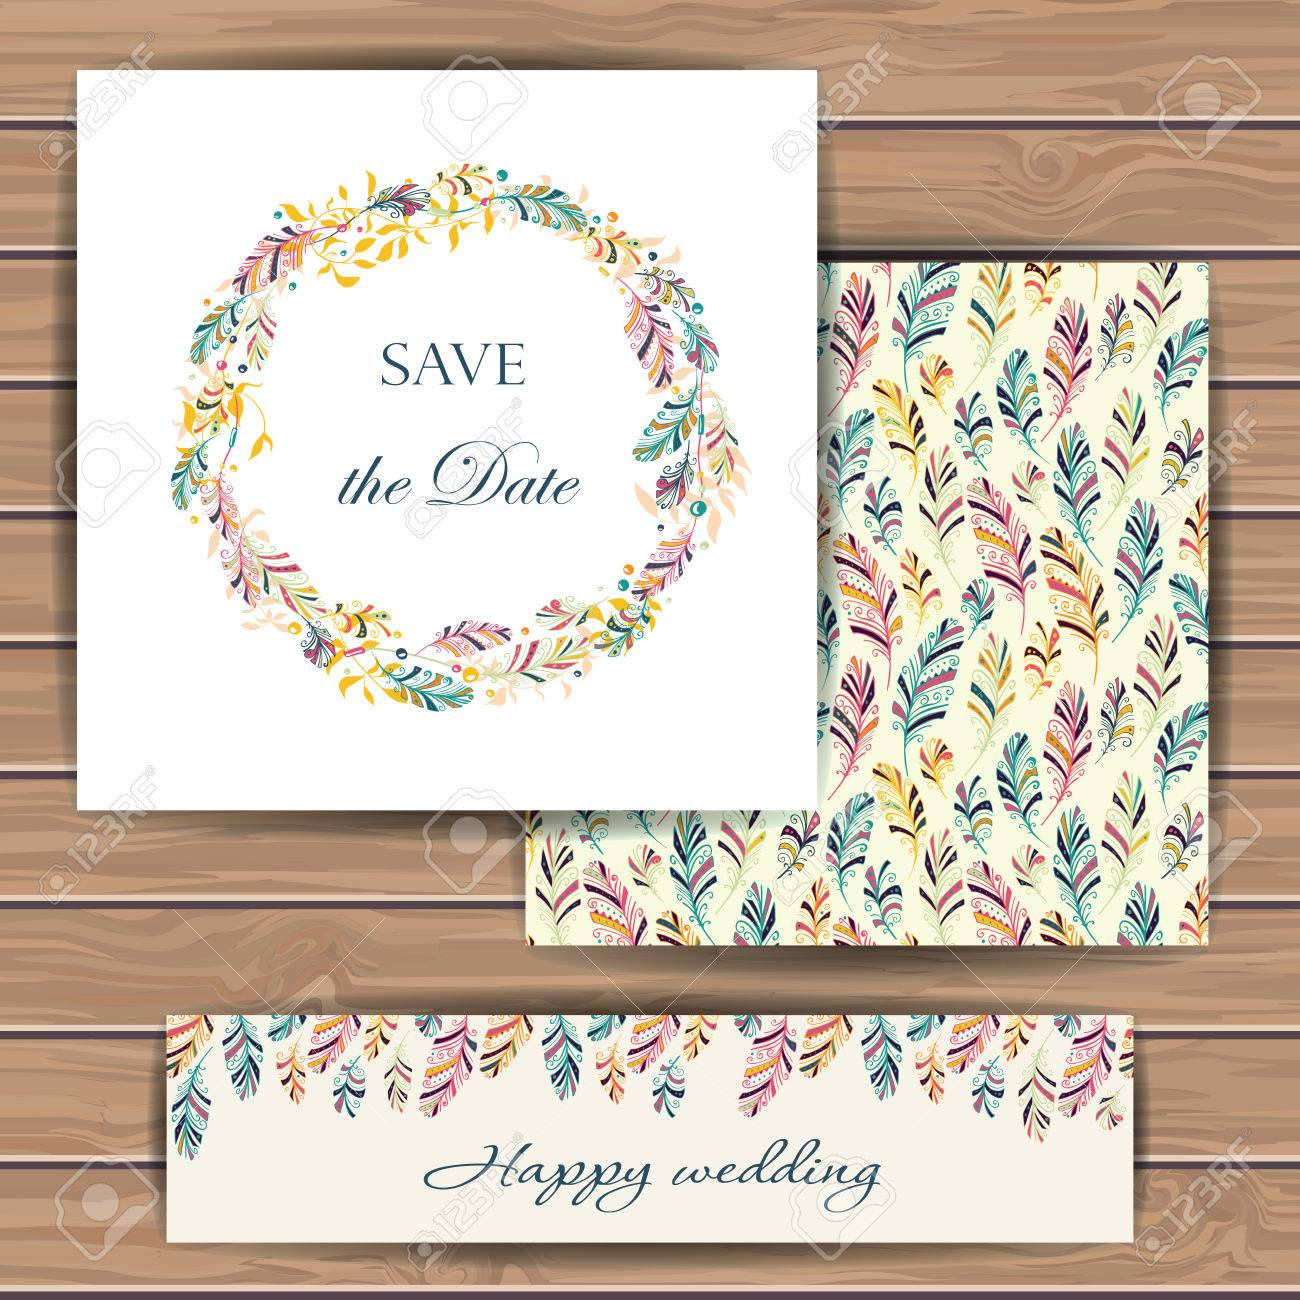 Greeting Cards With Feather Hand Drawn Design For Save The Date